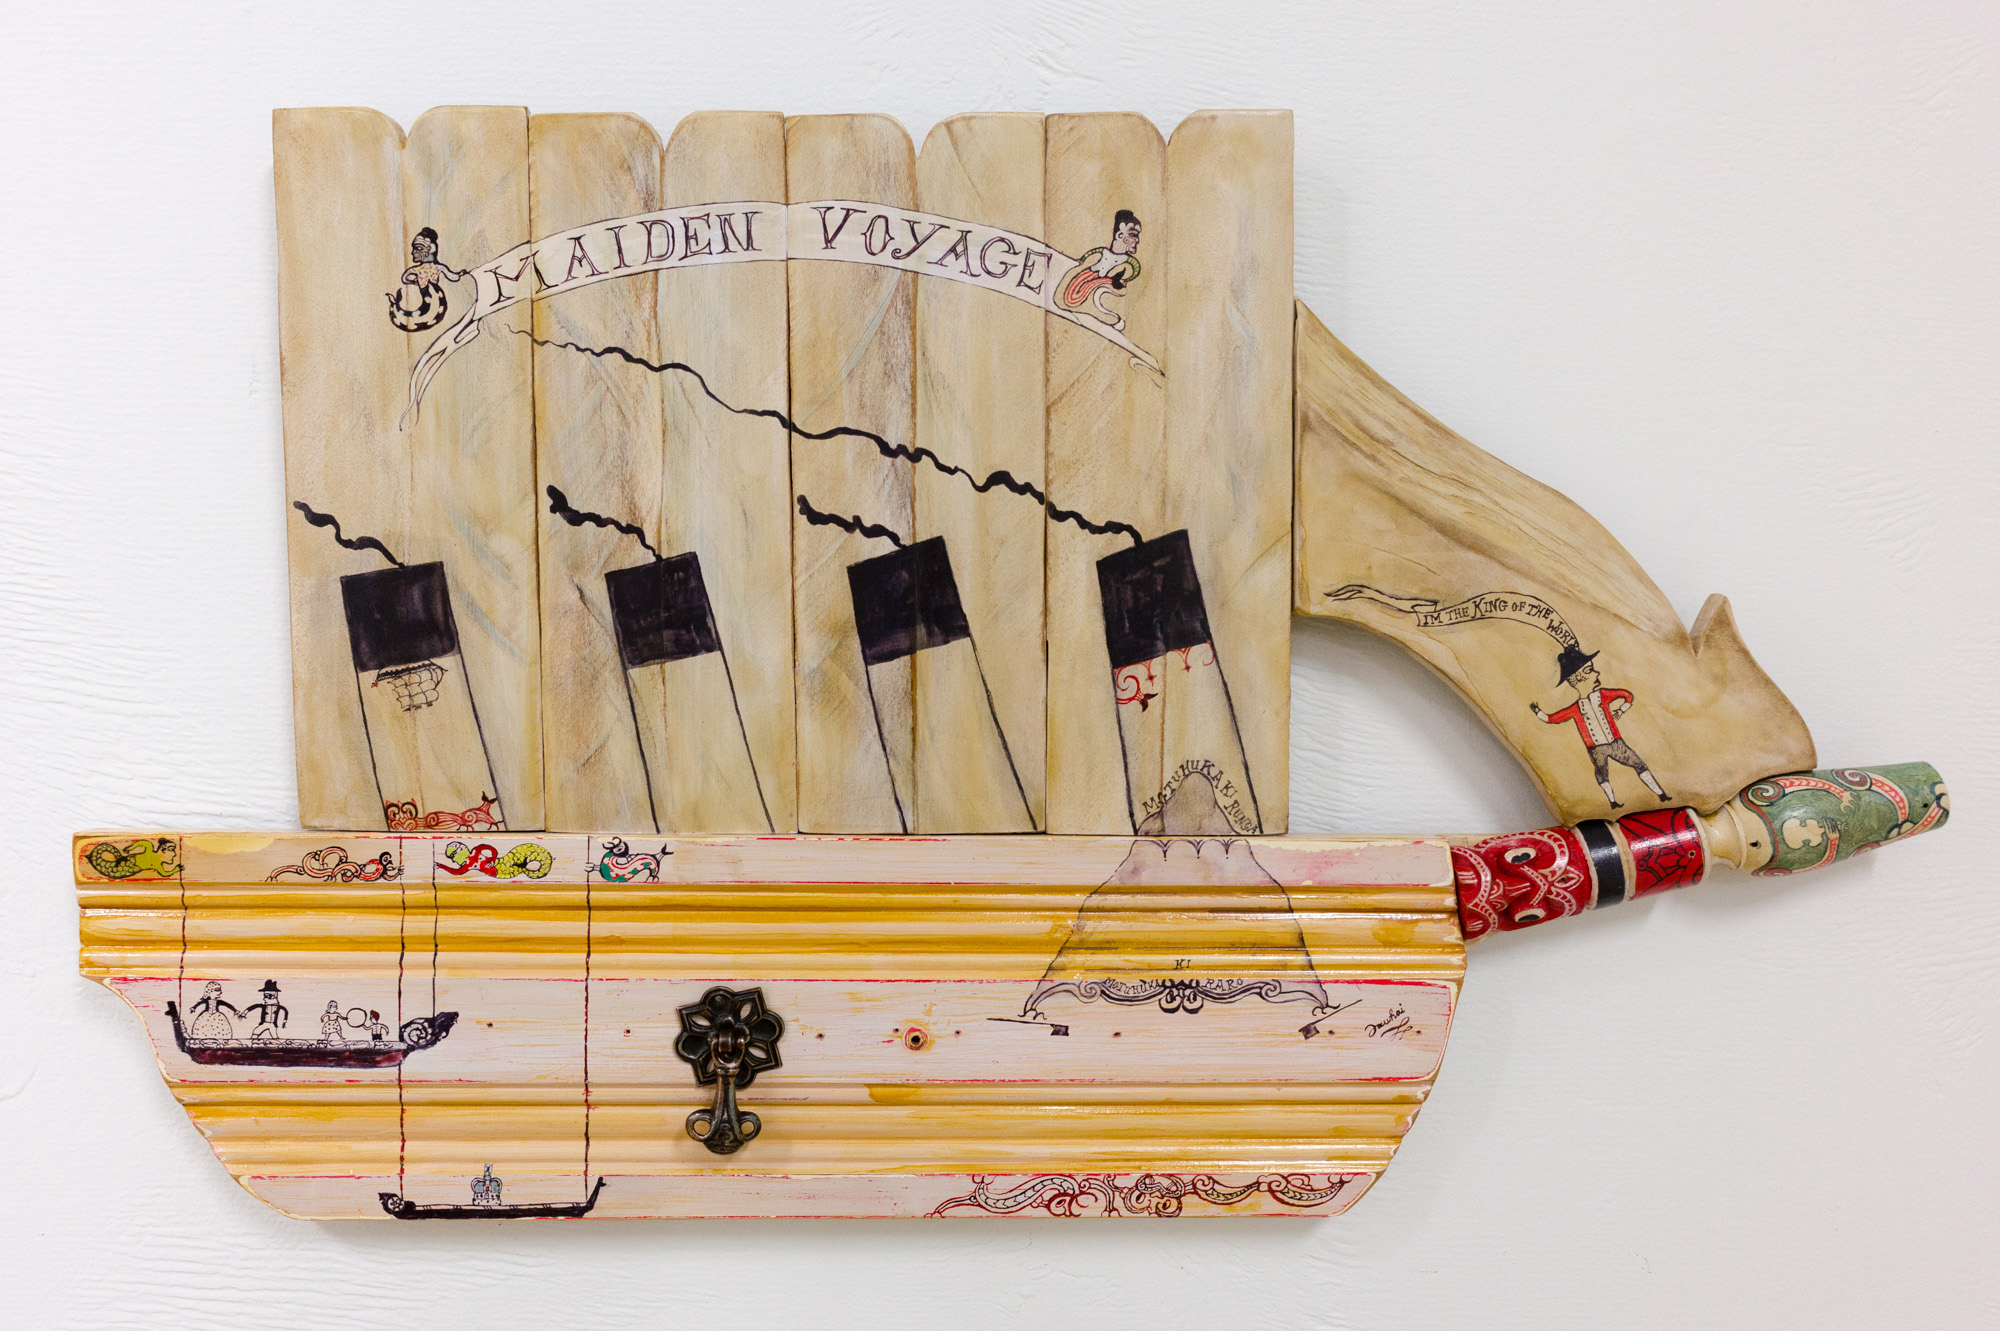 Maiden Voyage 2016 Paint and whakairo using reclaimed wood 440 x 745 x35mm    This work illustrates the maiden voyage of the infamous ship Titanic as a parallel     for the negative impacts of colonisation upon Maori.